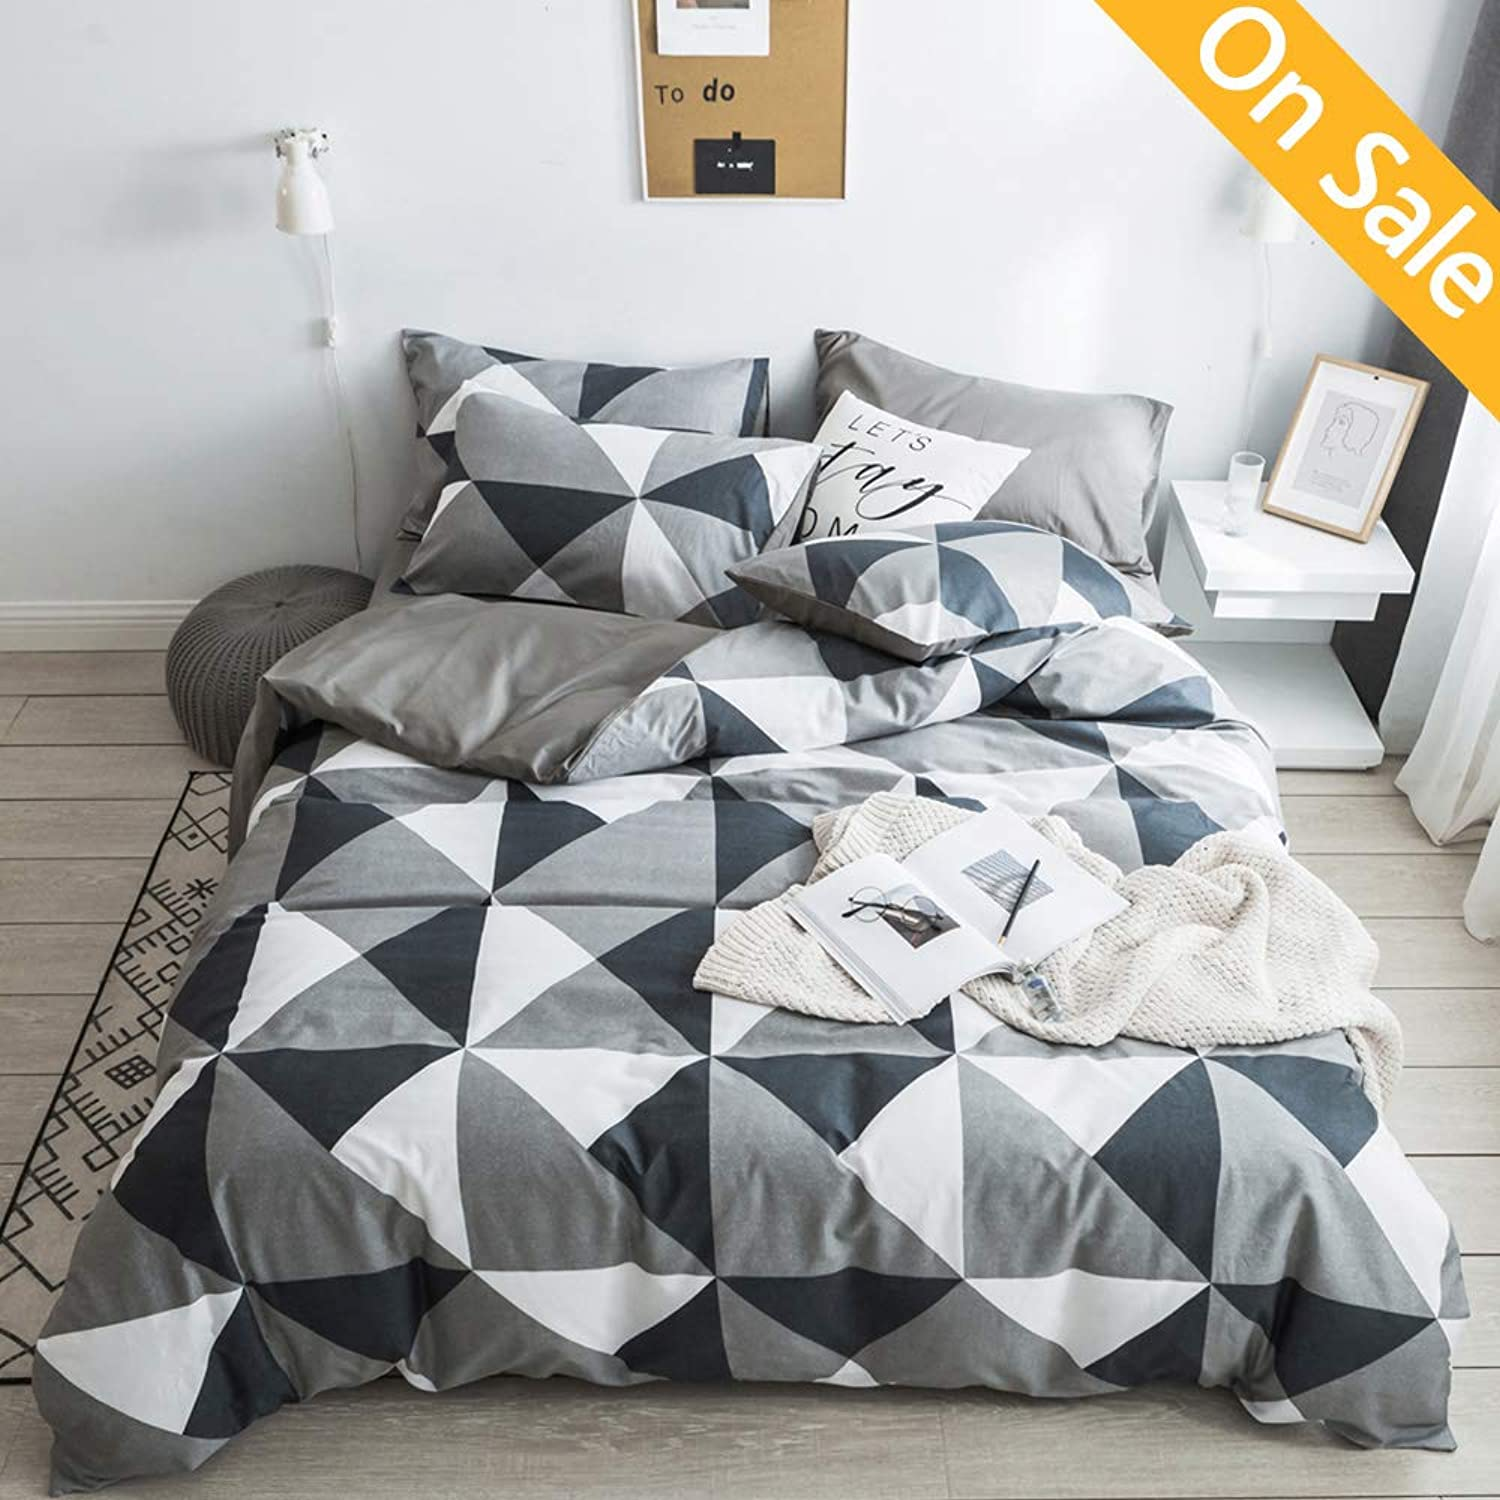 【Latest Arrival】Comforter Cover Queen Triangle Duvet Cover Set Cotton Full Grey Geometric Modern Duvet Cover Reversible Bedding Collection with Zipper Ties for Men Women Teens,NO Comforter NO Sheet